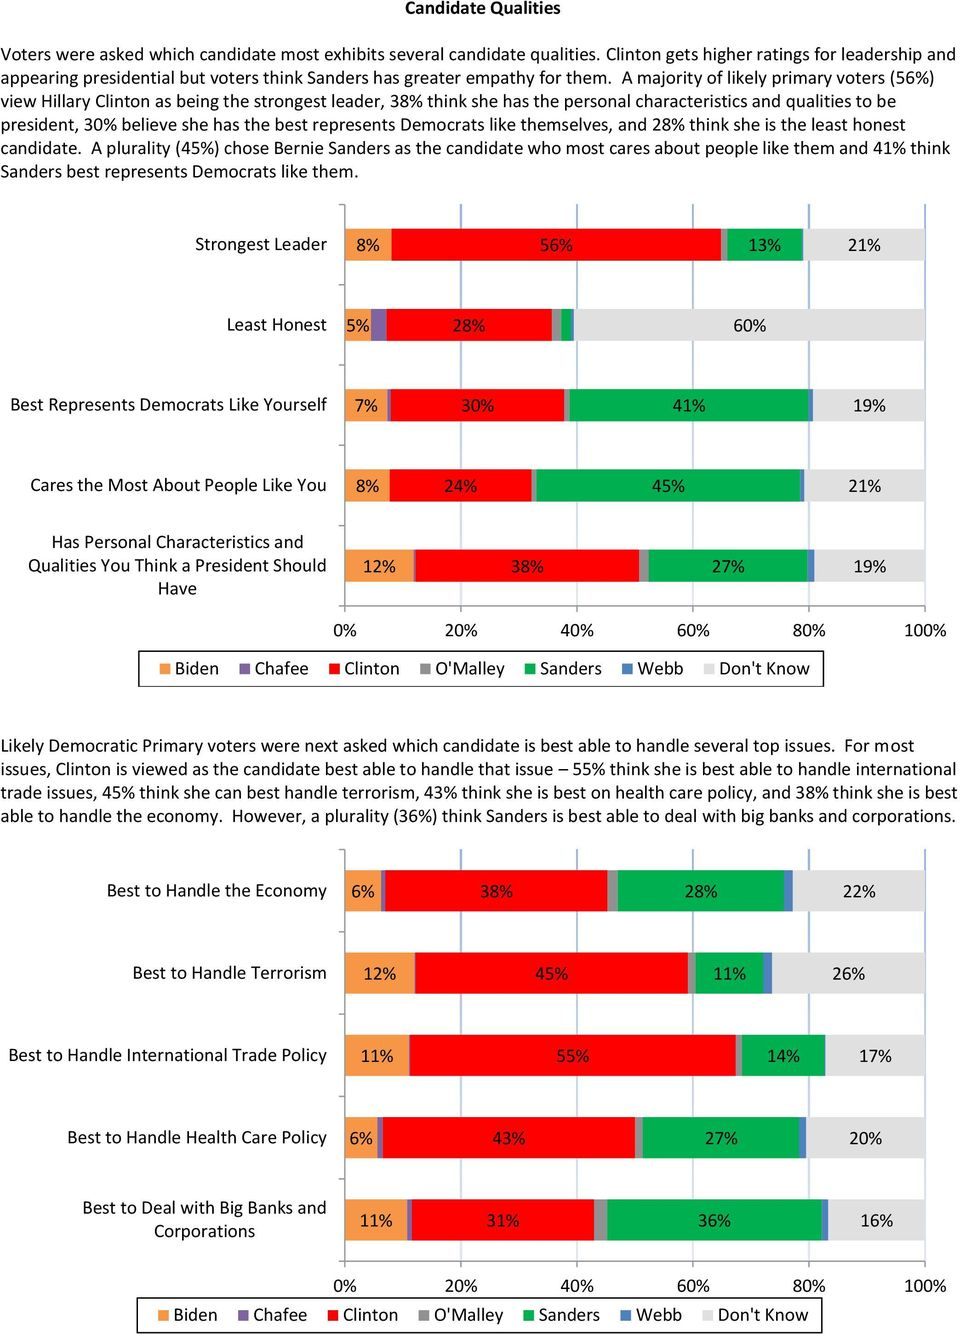 A majority of likely primary voters (56%) view Hillary Clinton as being the strongest leader, 38% think she has the personal characteristics and qualities to be president, 30% believe she has the